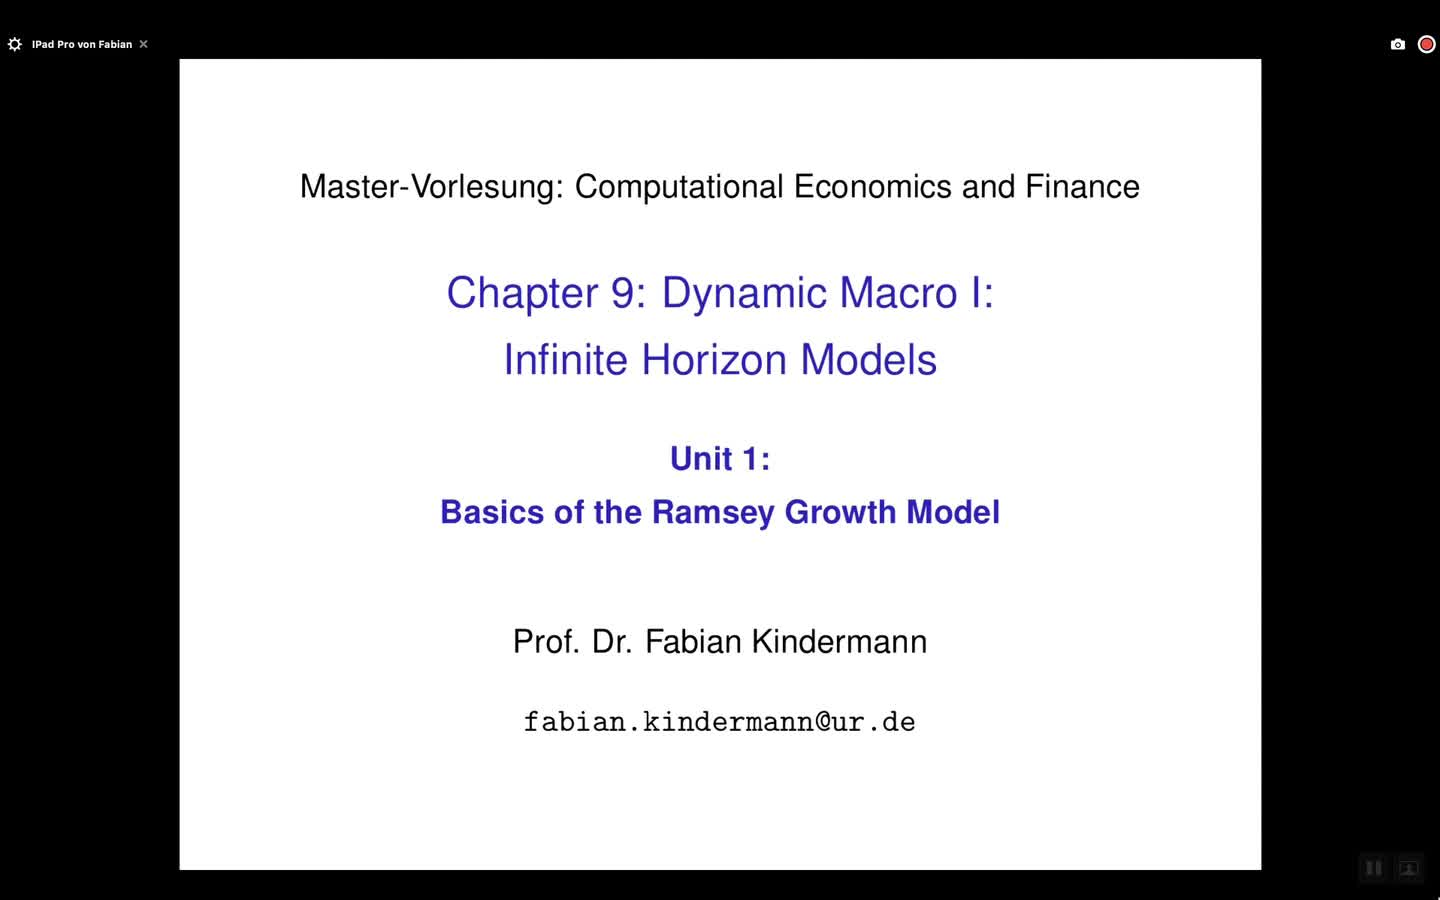 Chapter 9 - Unit 1 - Basics of the Ramsey Growth Model